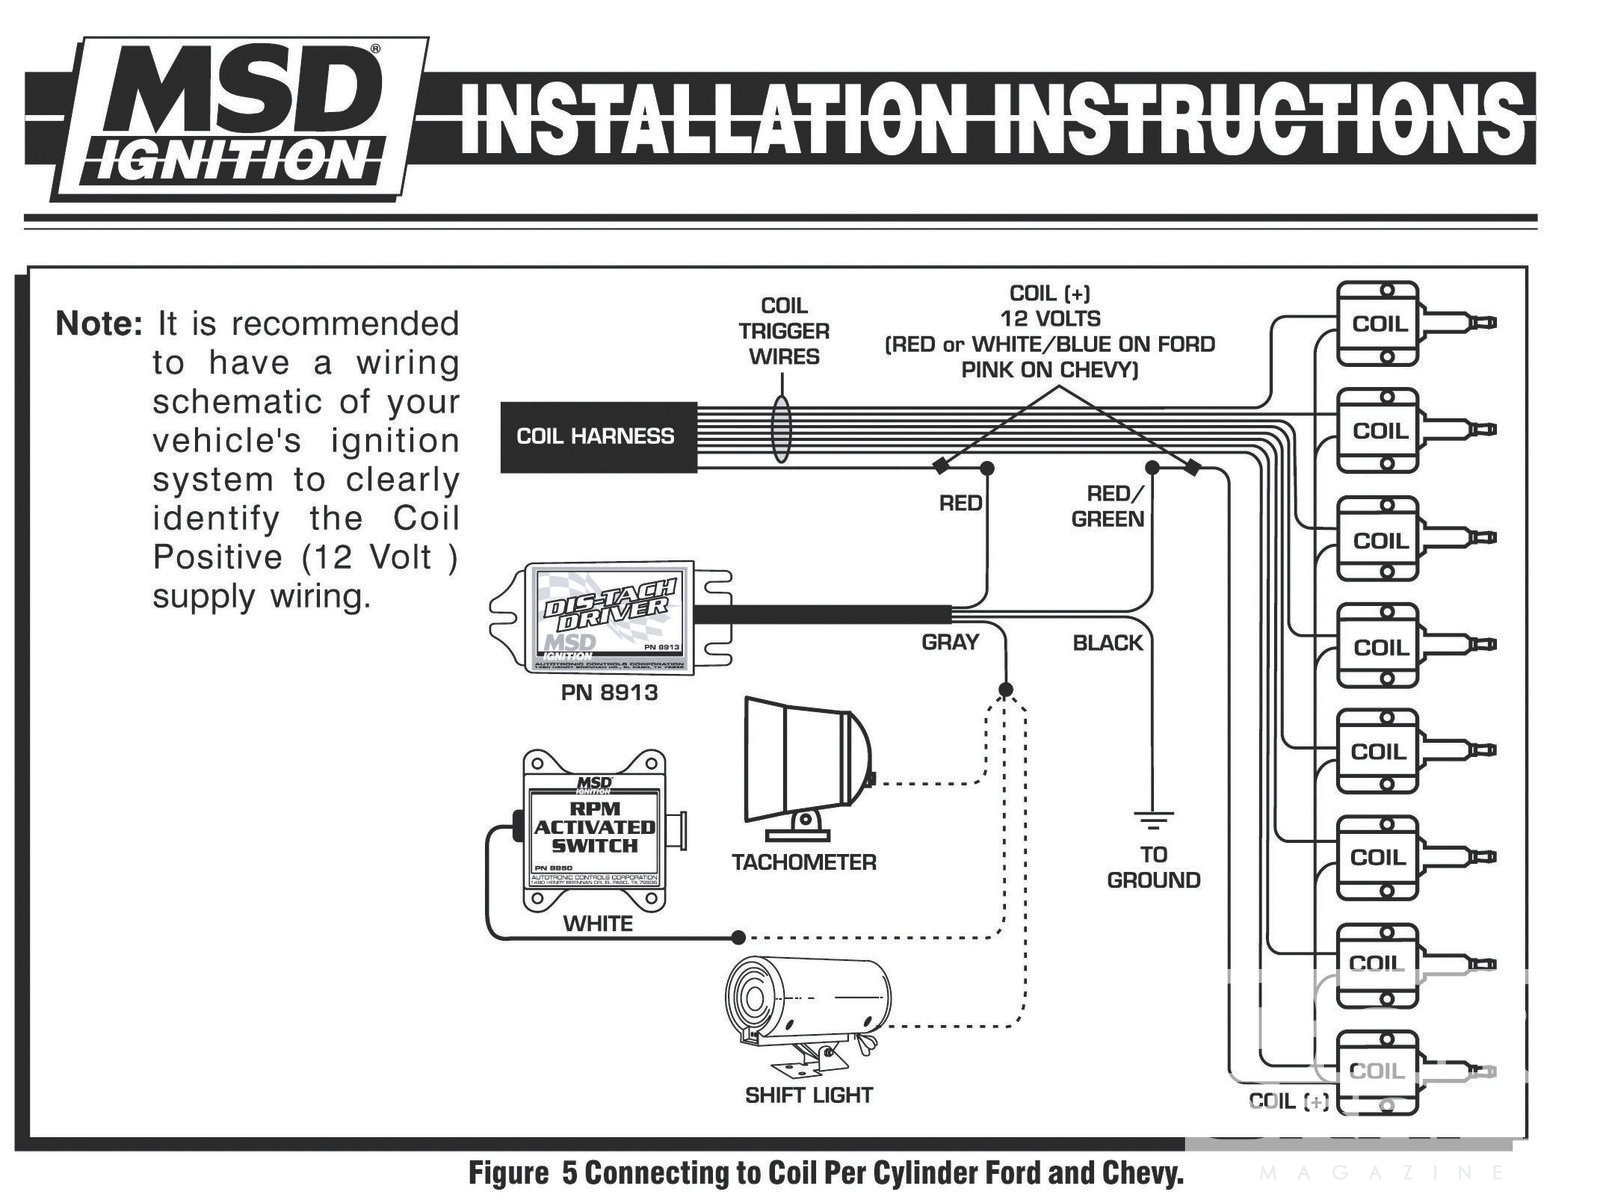 hight resolution of electronic ignition tach install install a tach in a dis car hot 356796 10 mopar electronic ignition wiring diagram